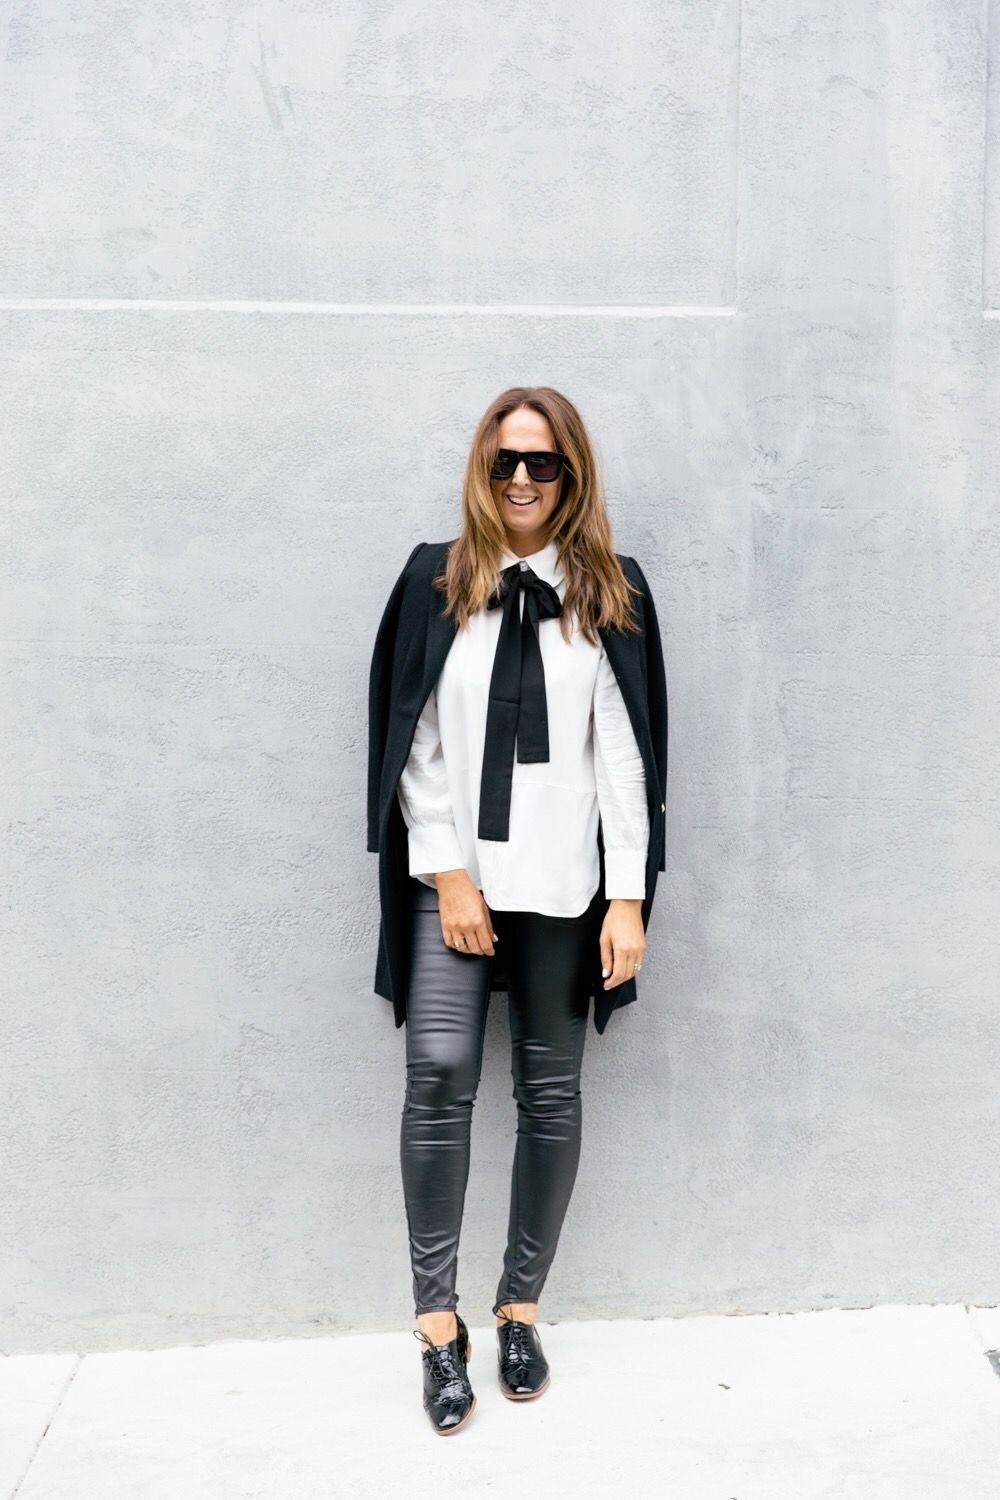 Pin on (STYLE INSPIRATION)